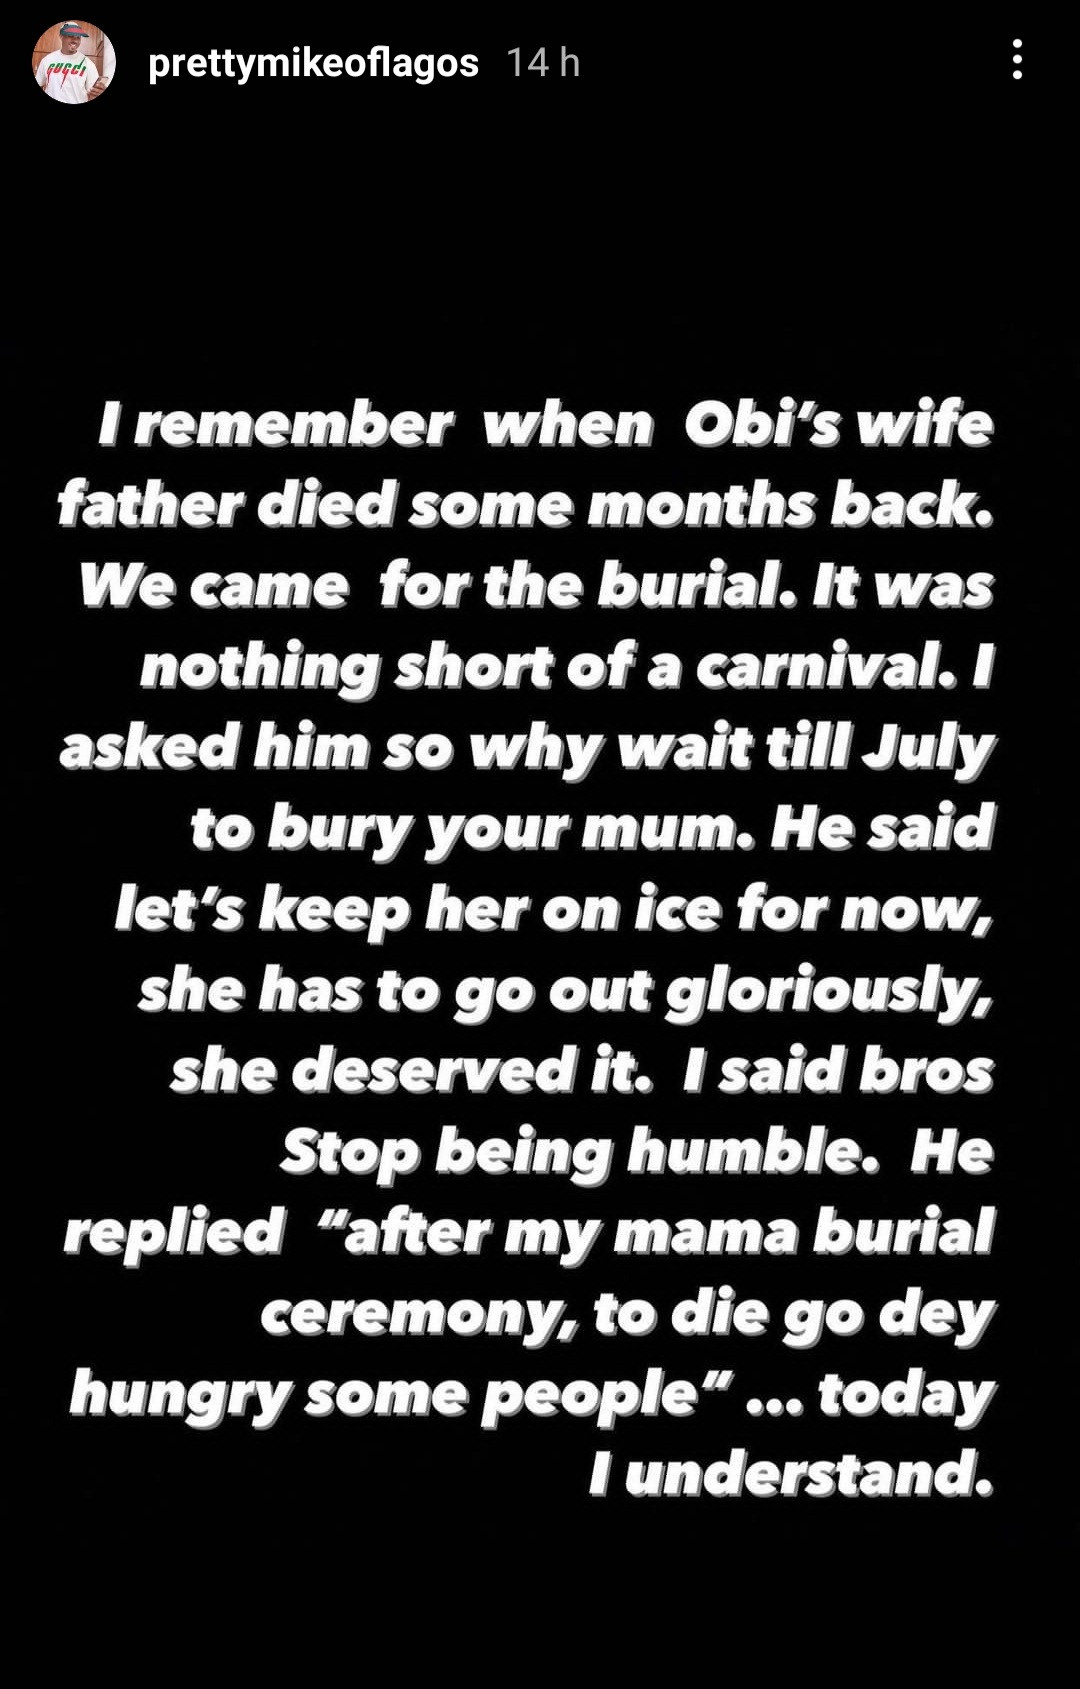 Obi Cubana told me people will crave death after his mother